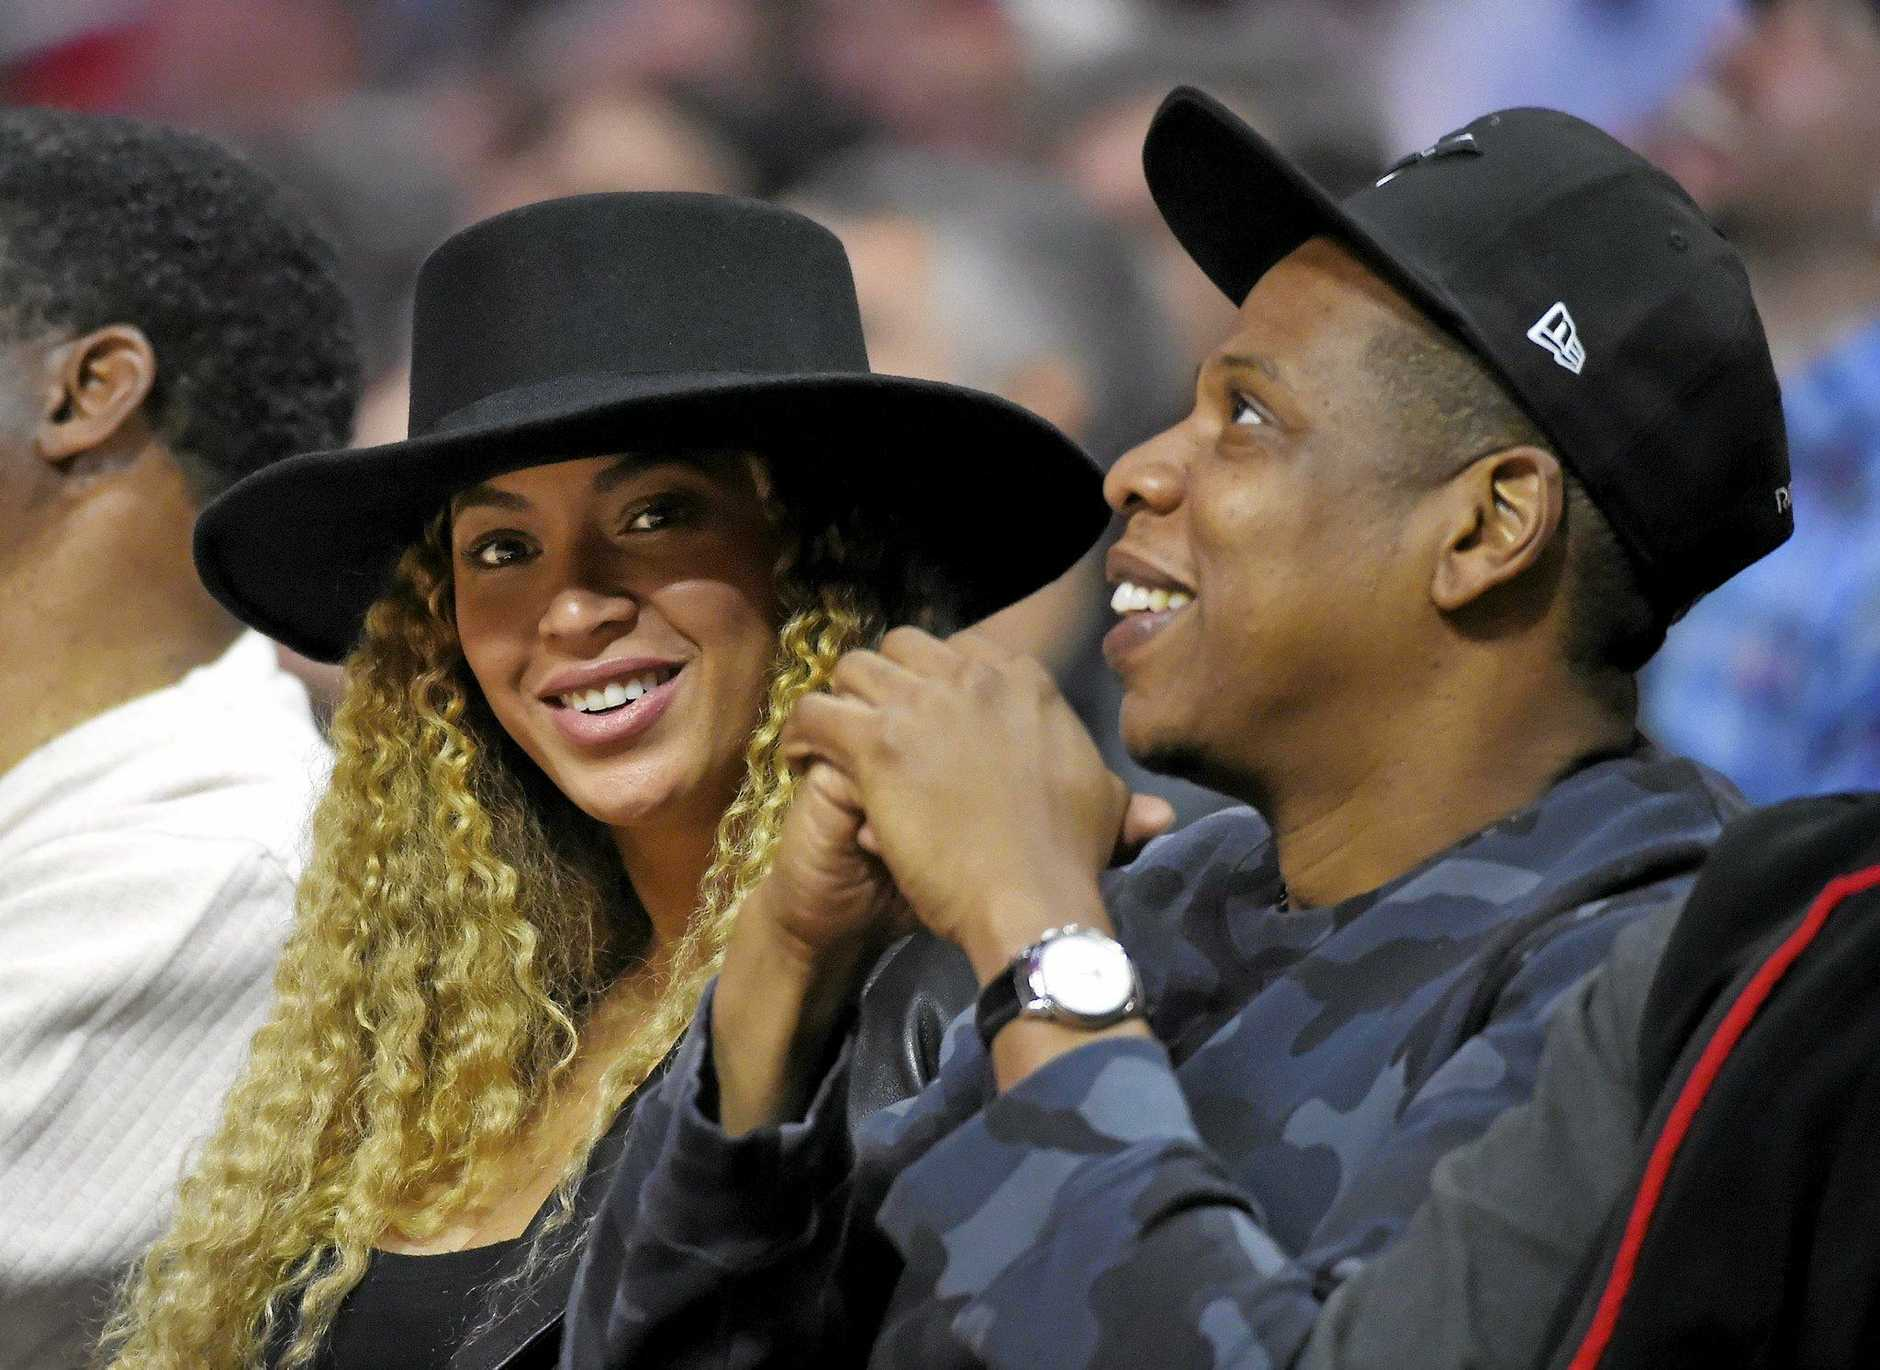 Singers Beyonce and Jay Z at an NBA game.